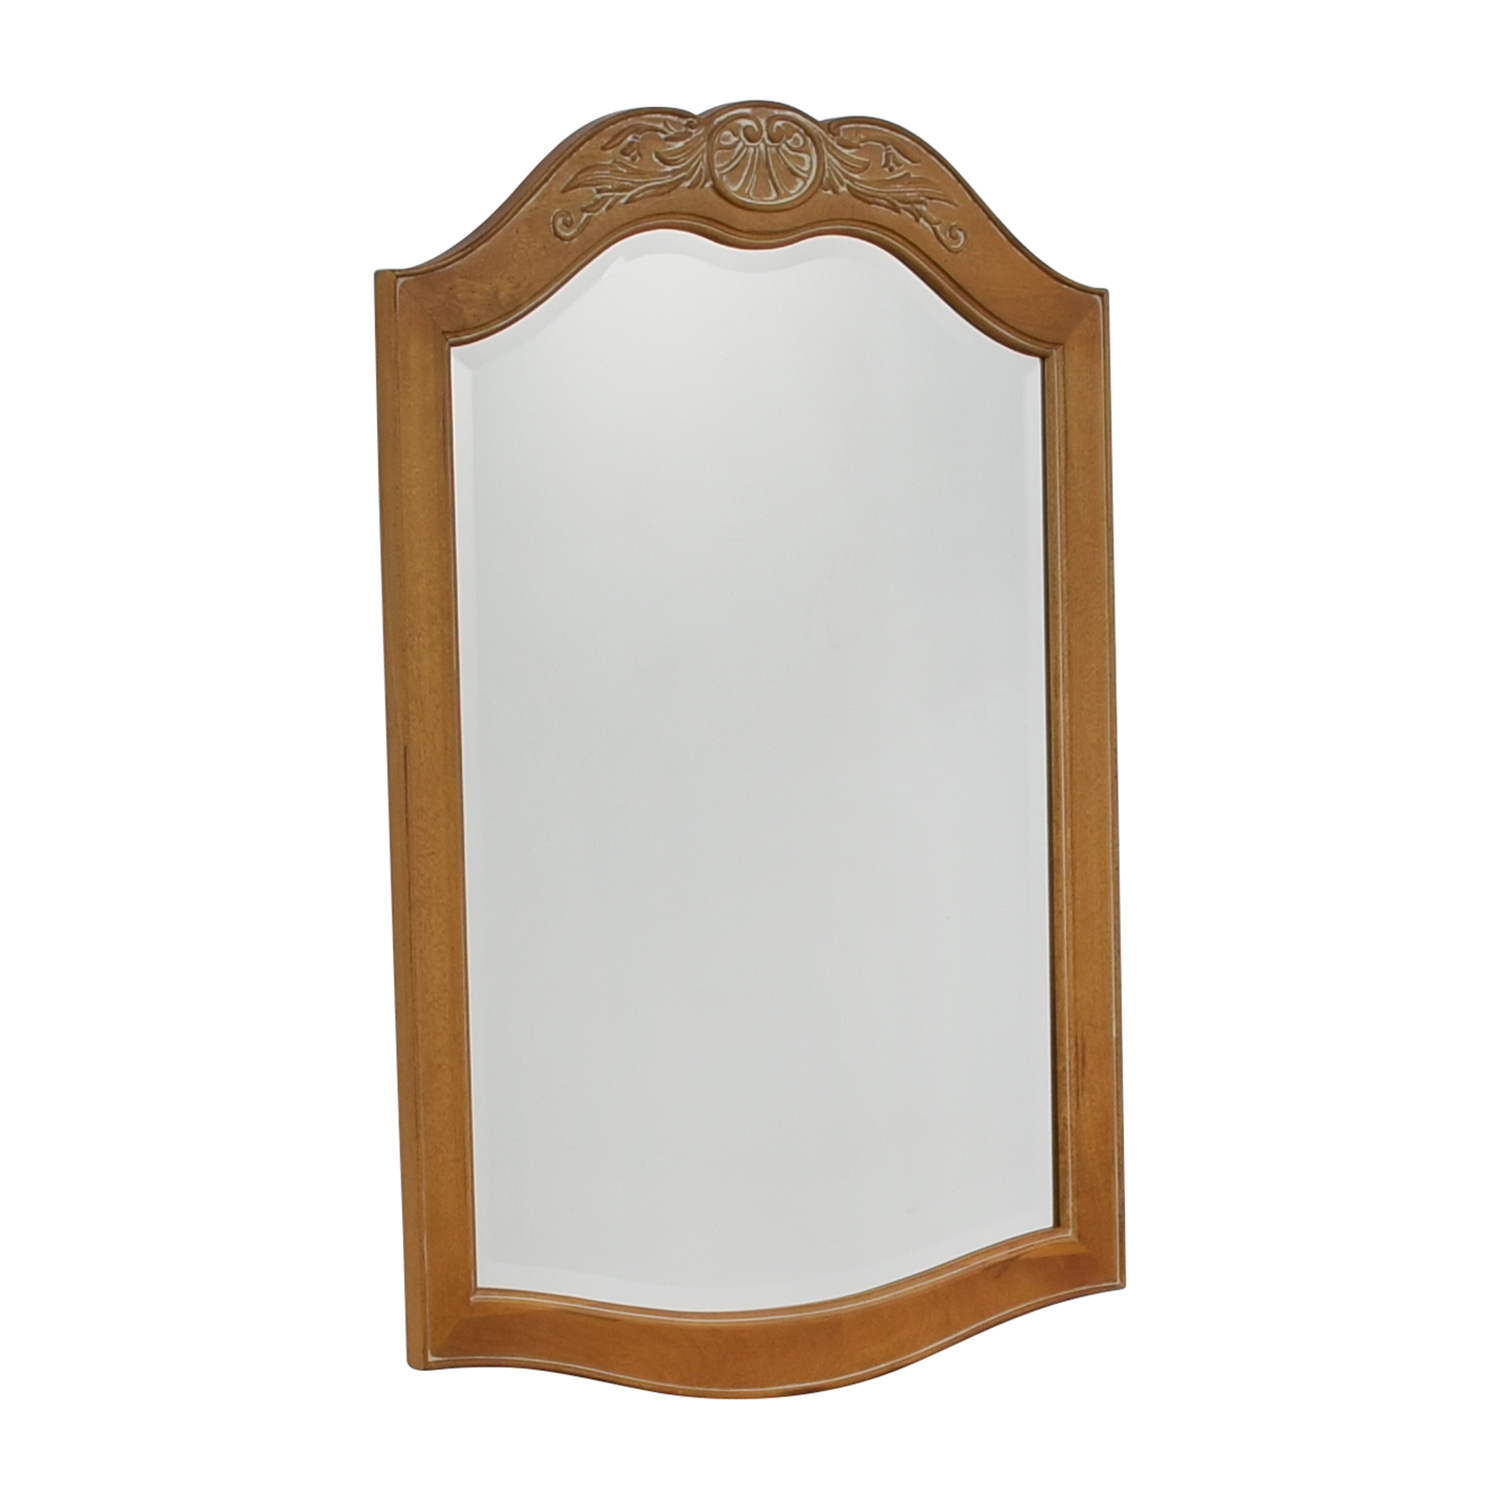 shop Ethan Allen Country French Wall Mirror Ethan Allen